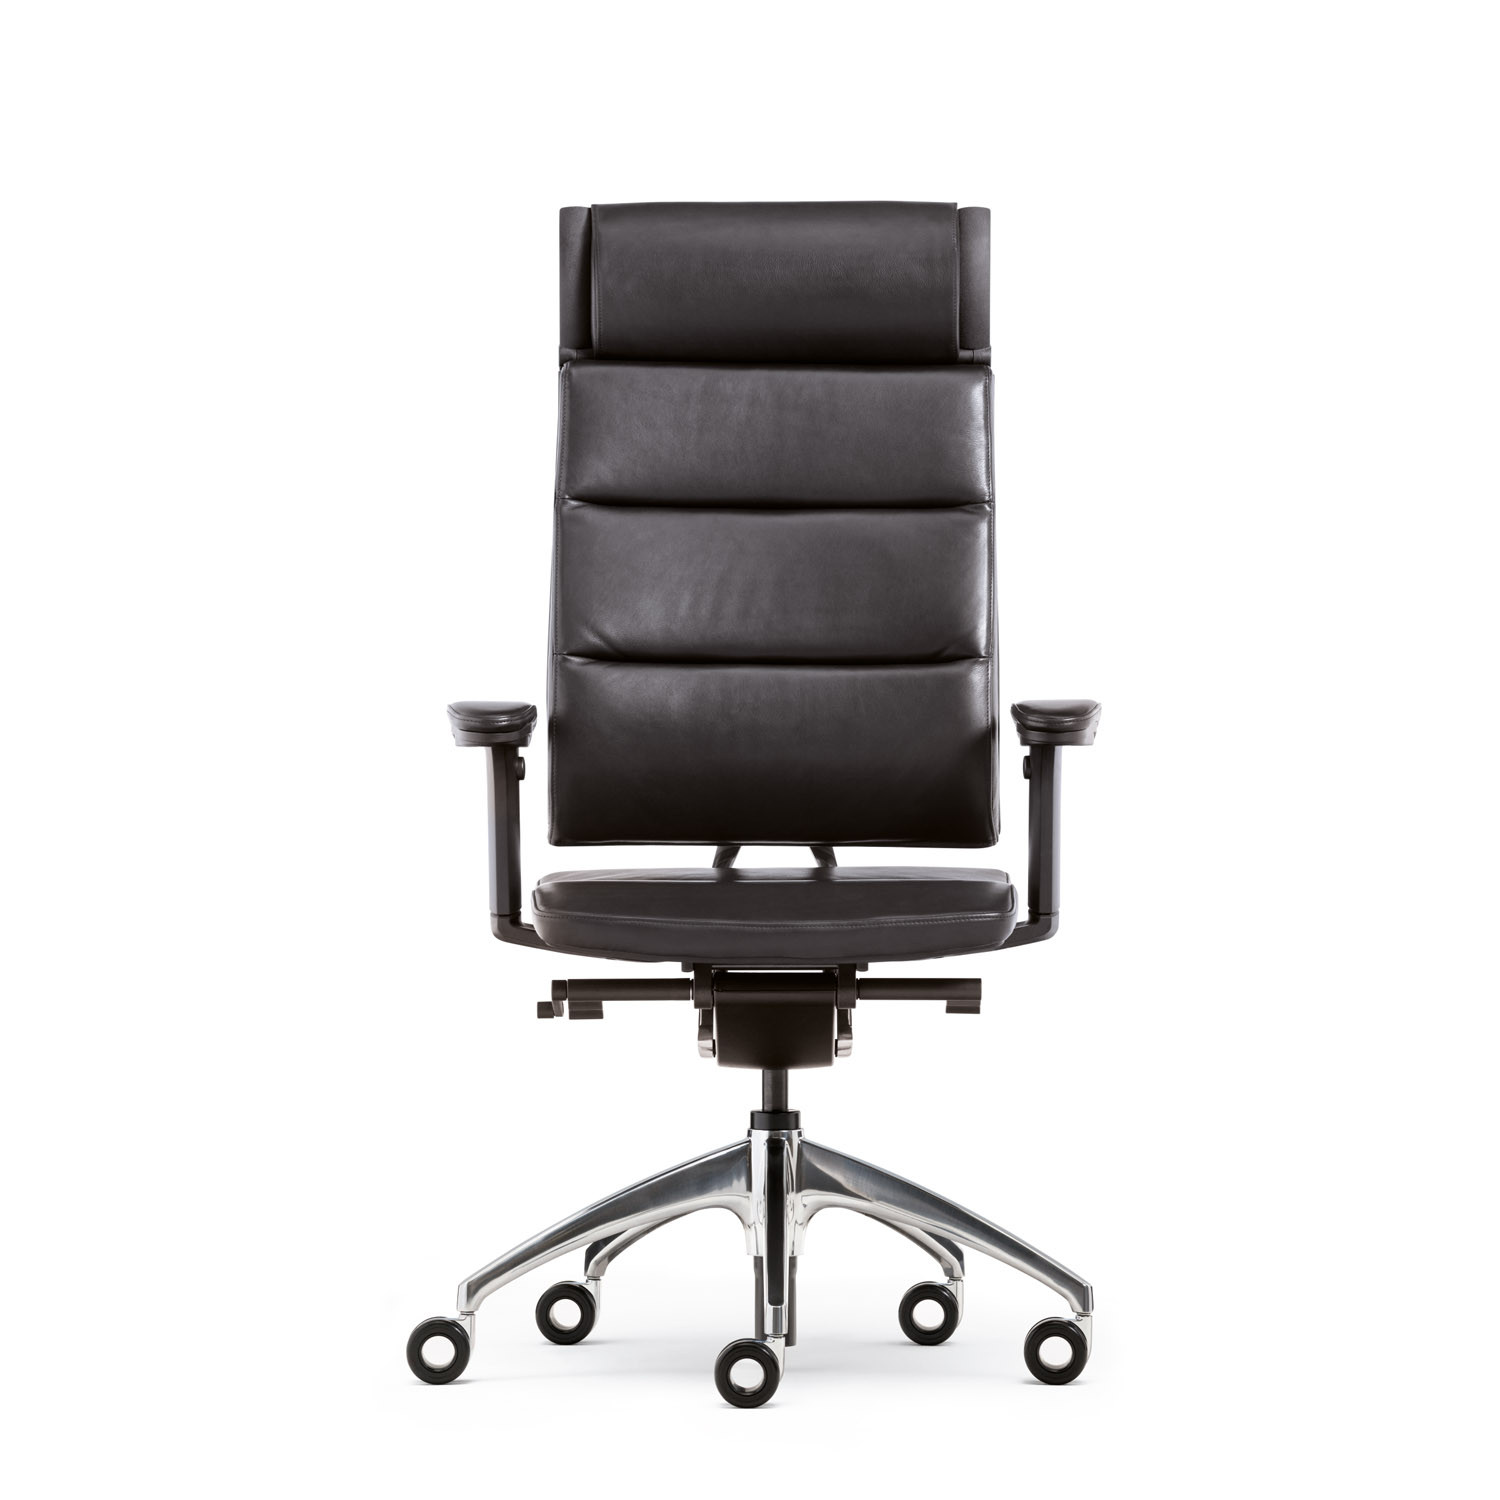 classic office chairs. Open Up Modern Classic Office Chairs I